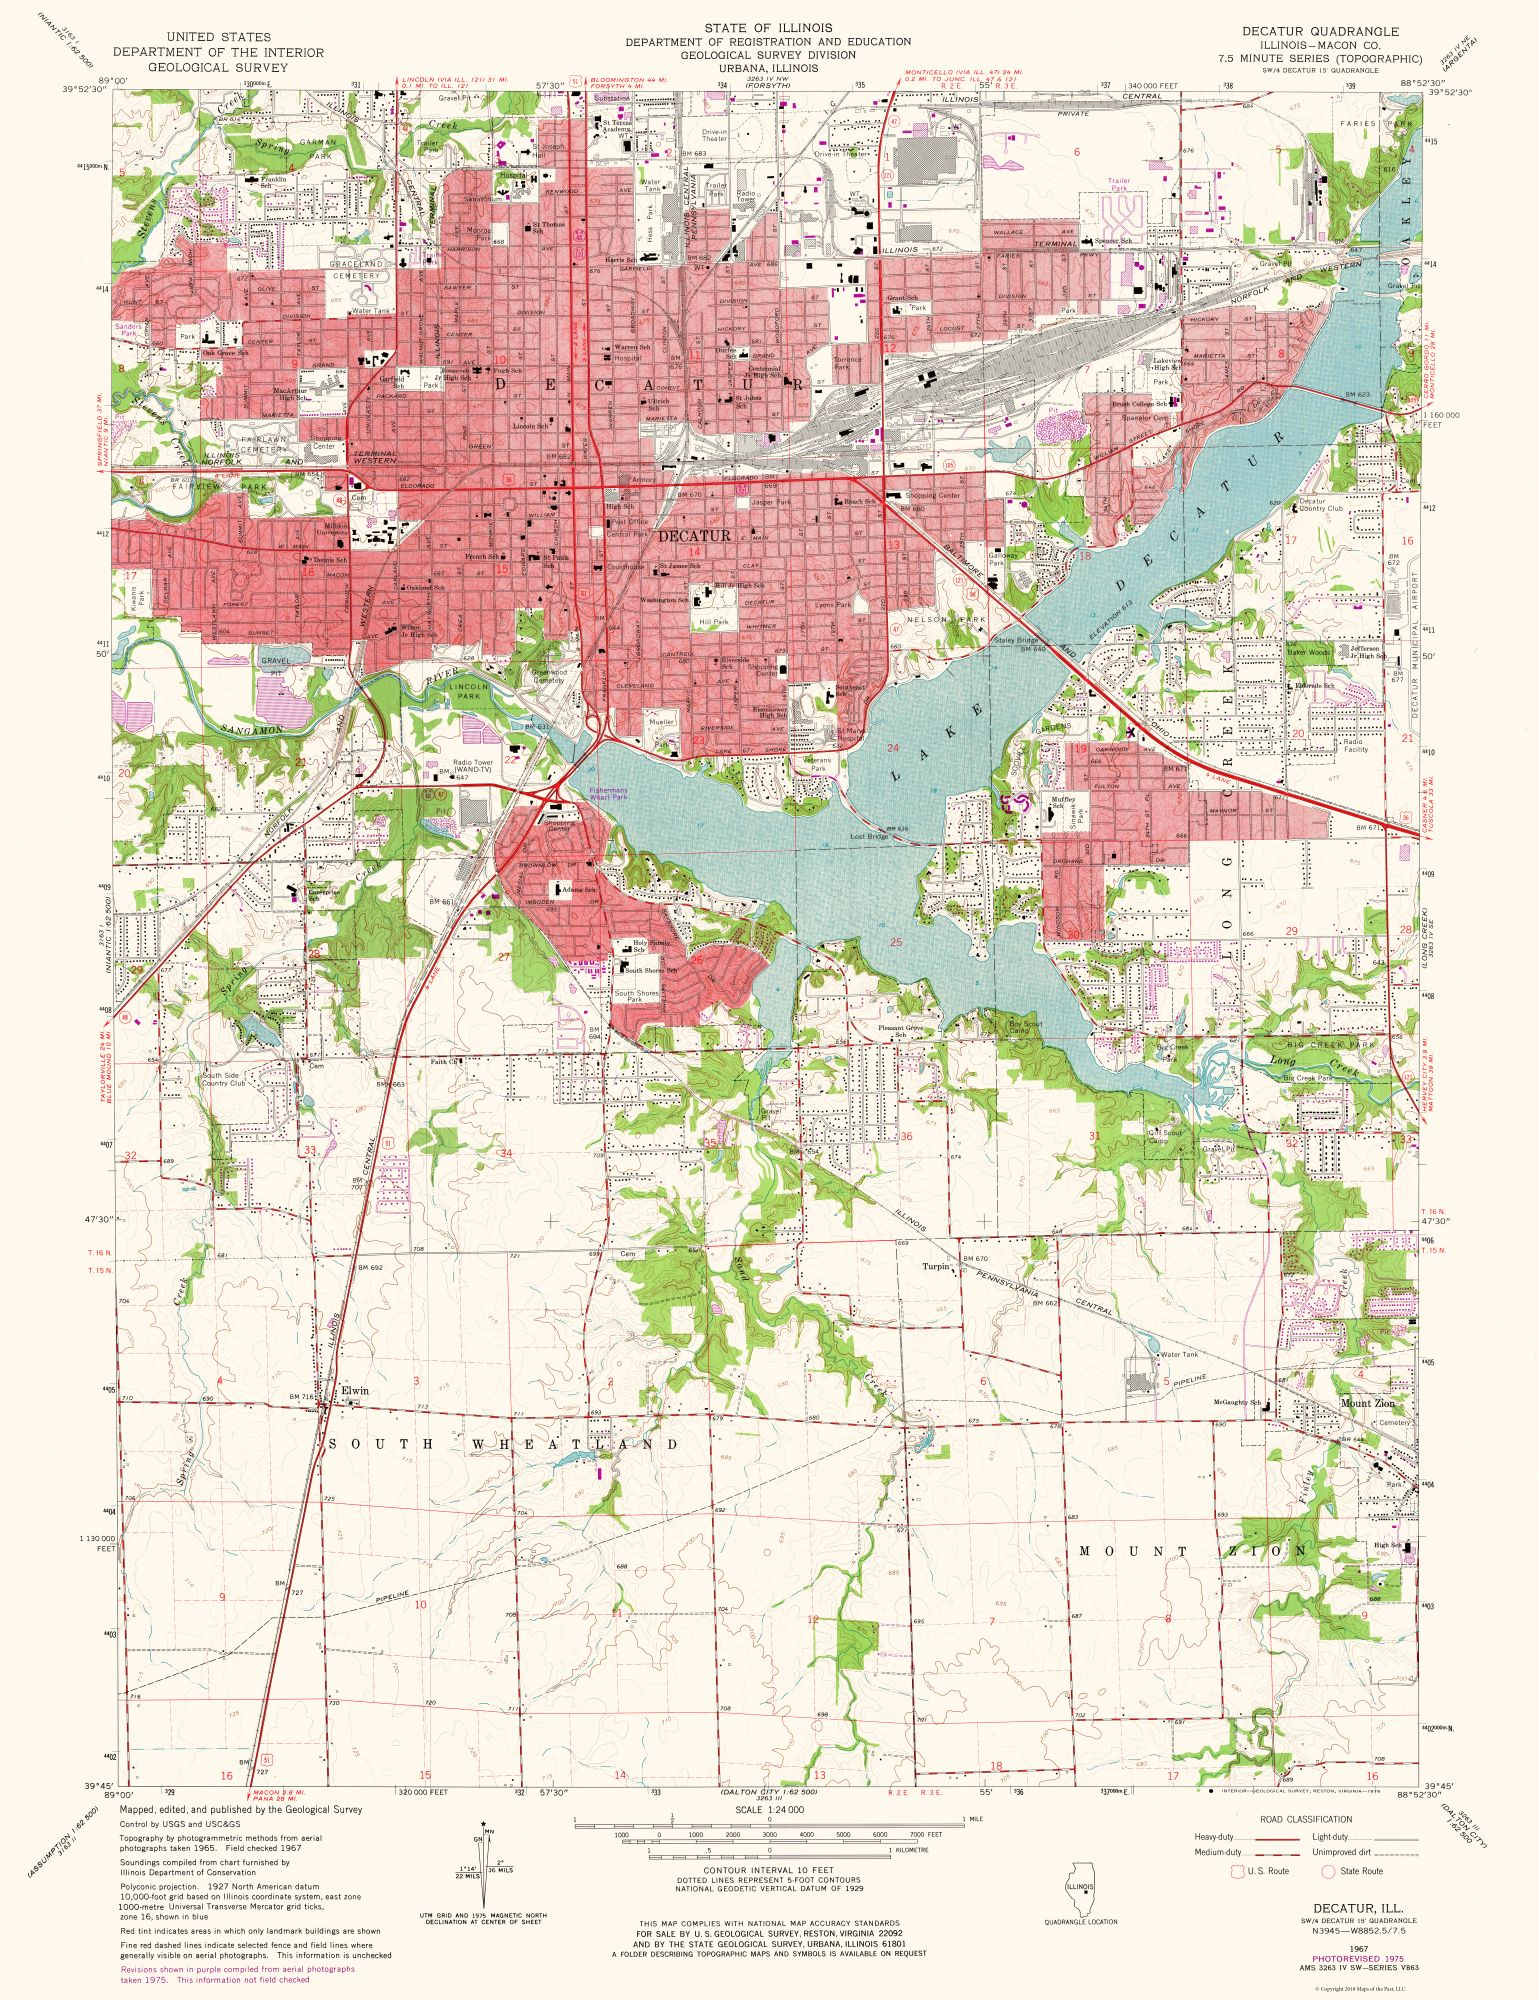 Decatur Illinois Map.Topographic Map Decatur Illinois Quad Usgs 1975 23 X 29 90